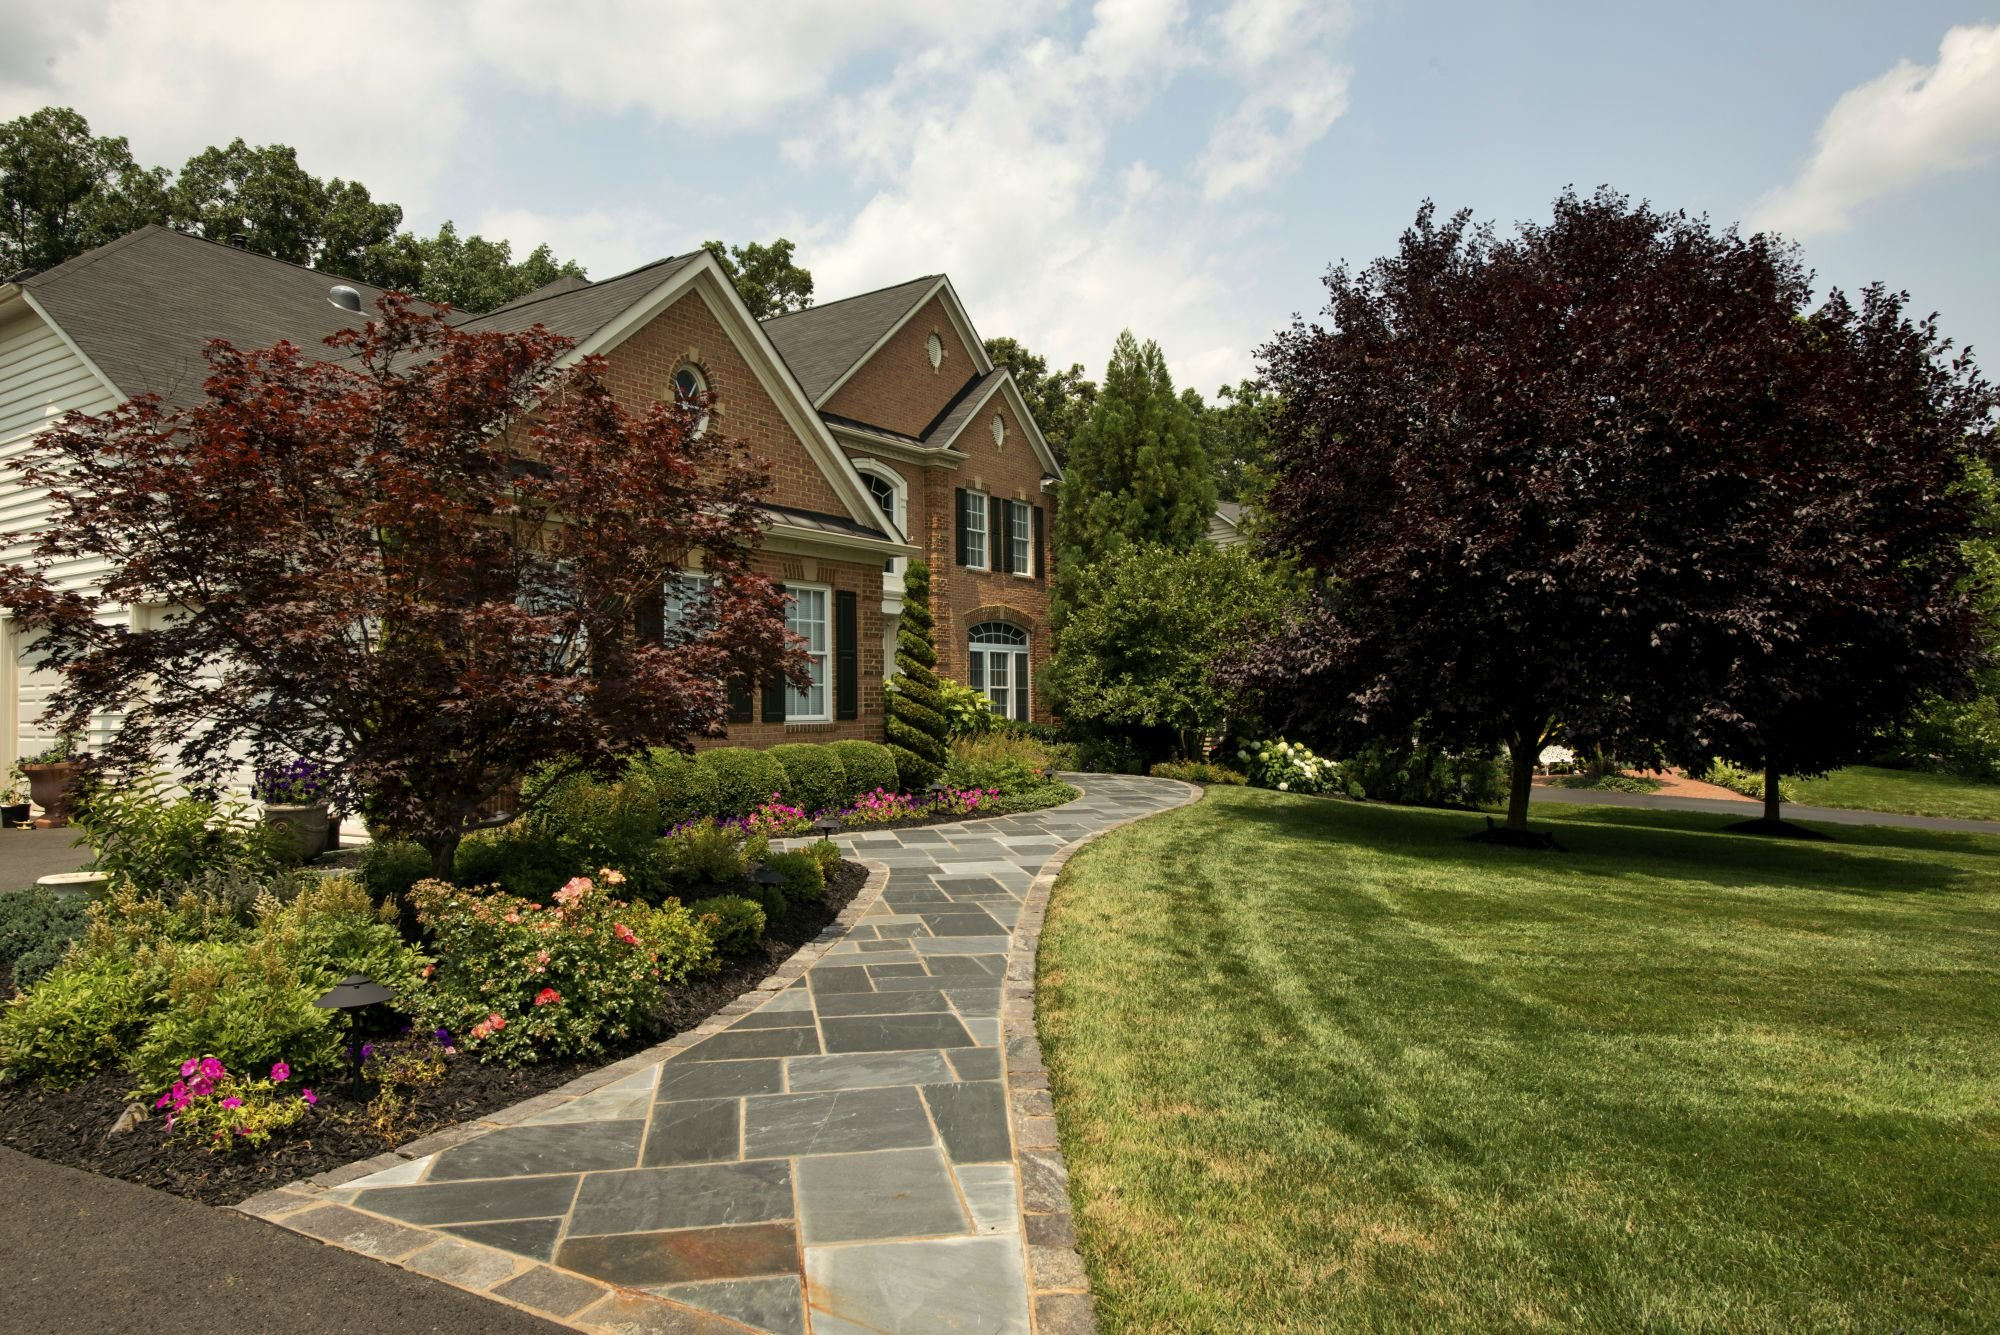 Stone Walkway Ideas, Costs and Design Tips for Your Home in Ashburn, Aldie, or Leesburg, VA